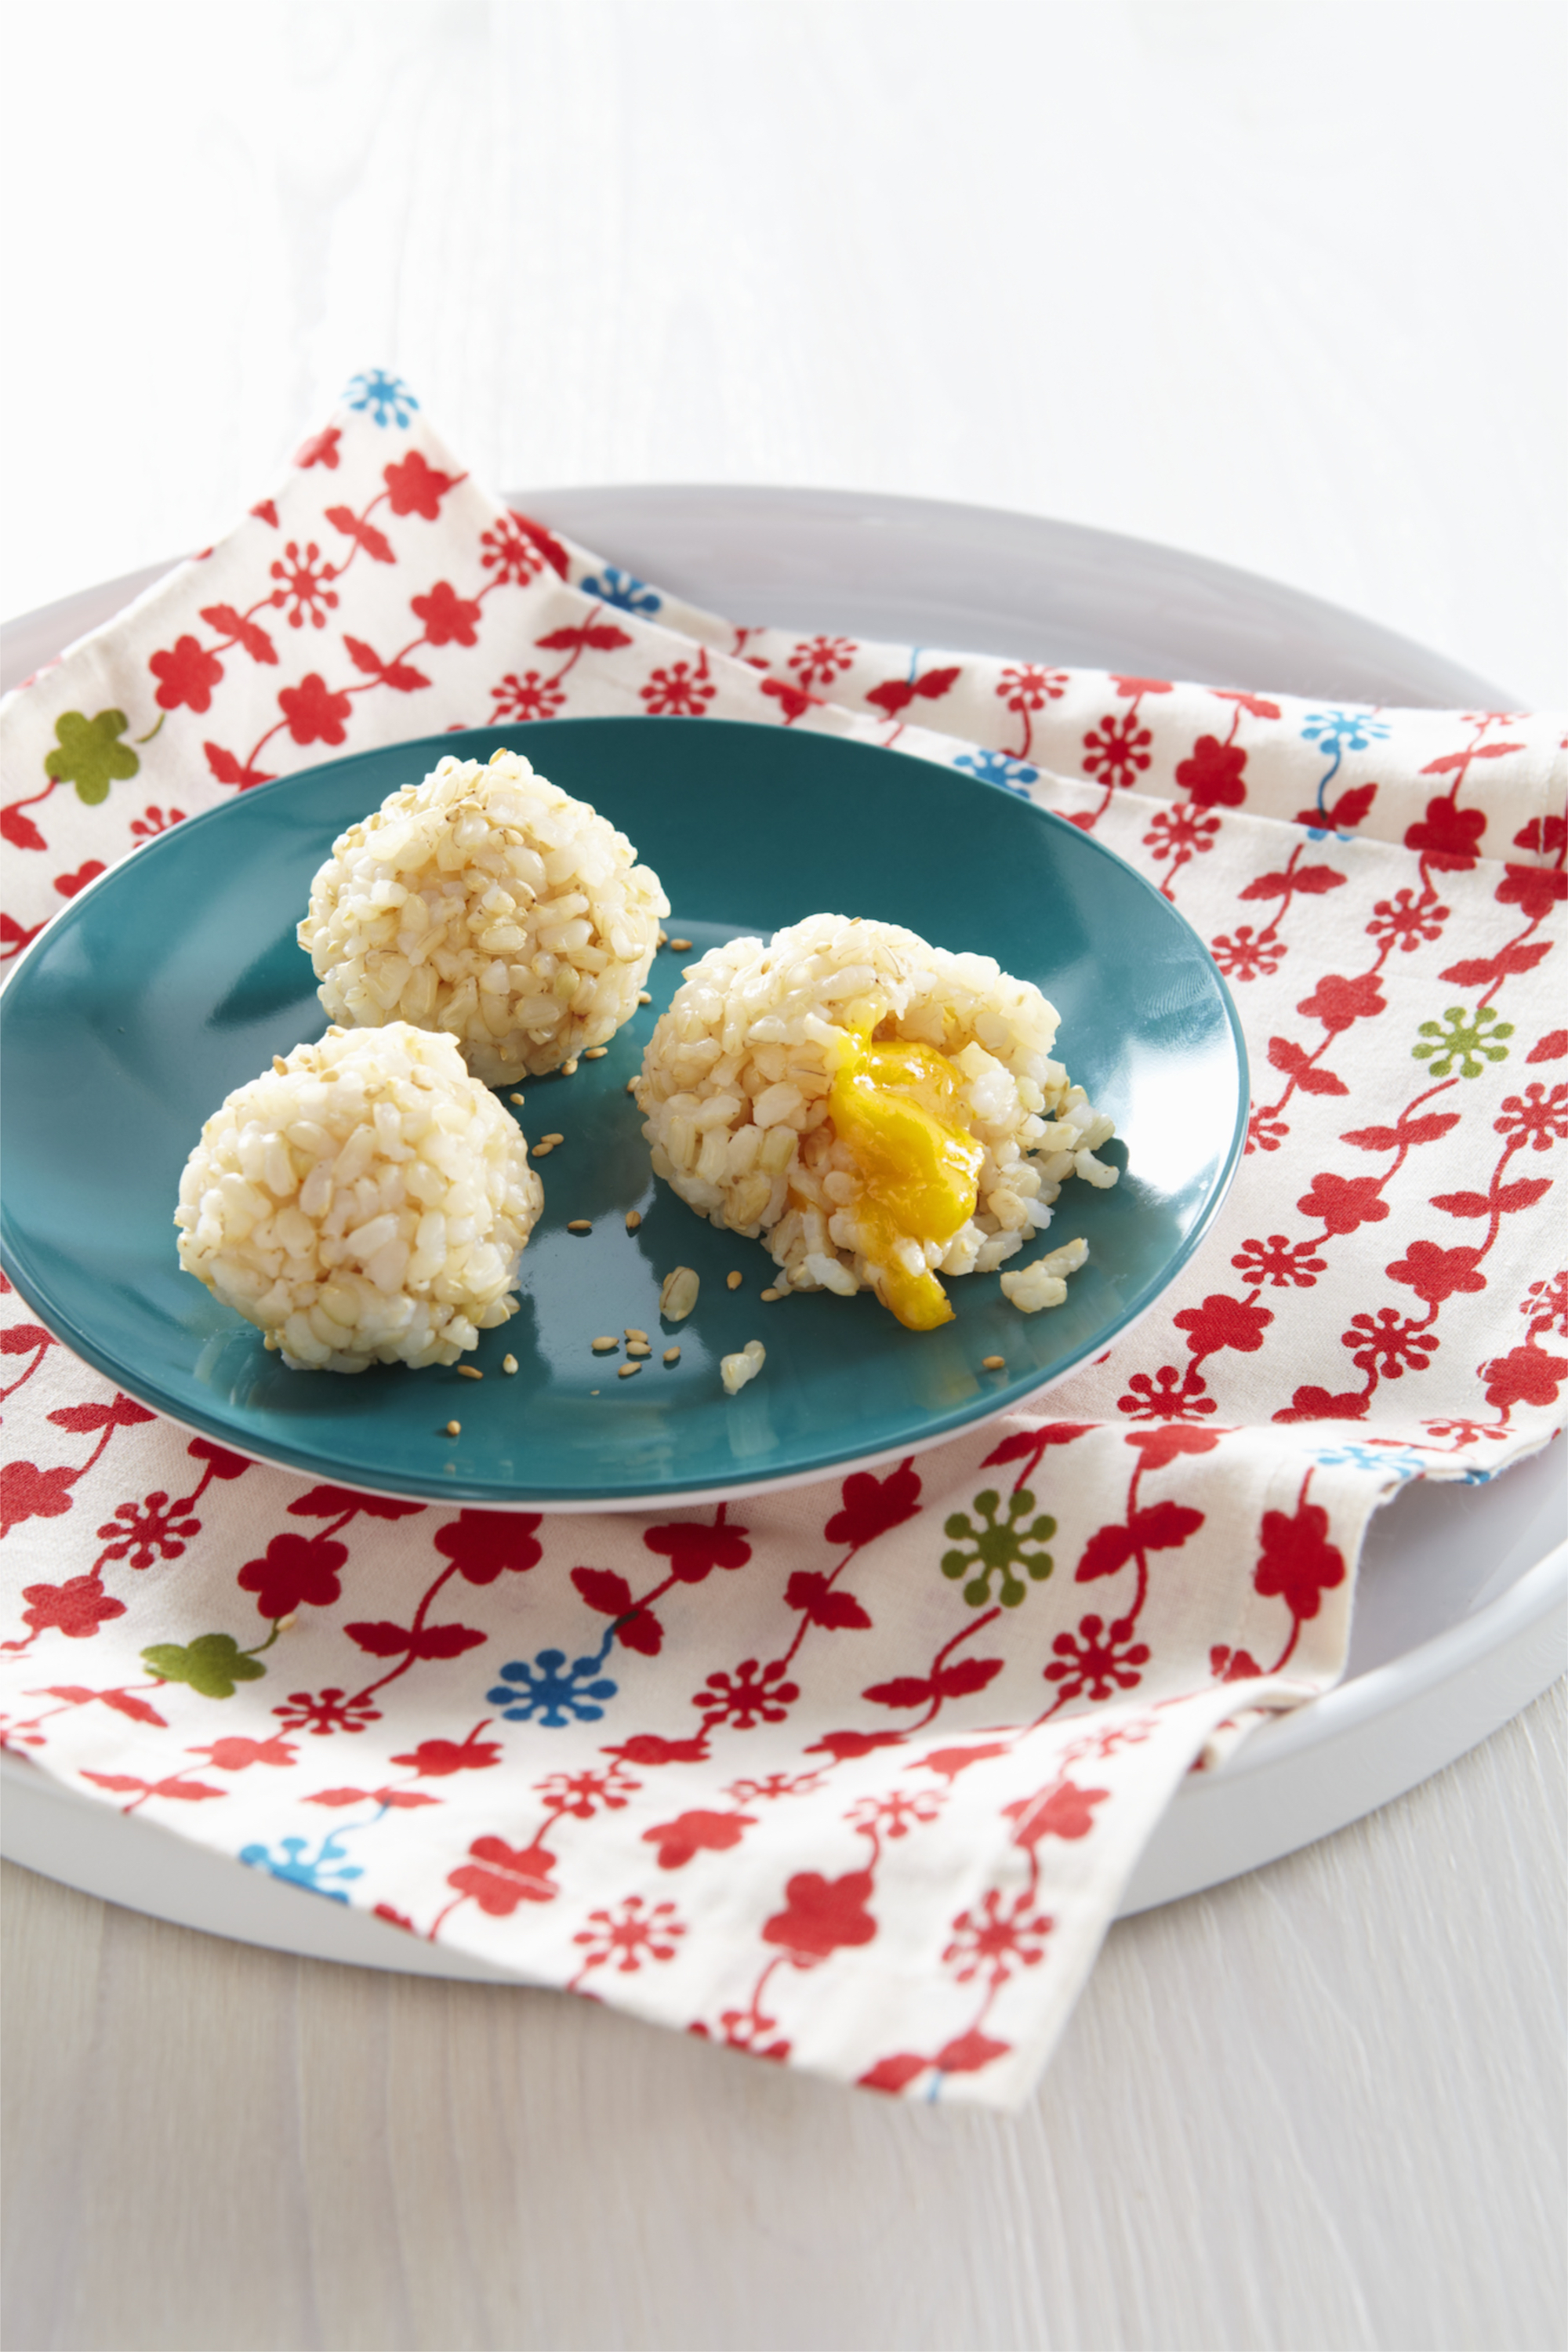 Rice and Cheese Ball Treasures from weelicious.com